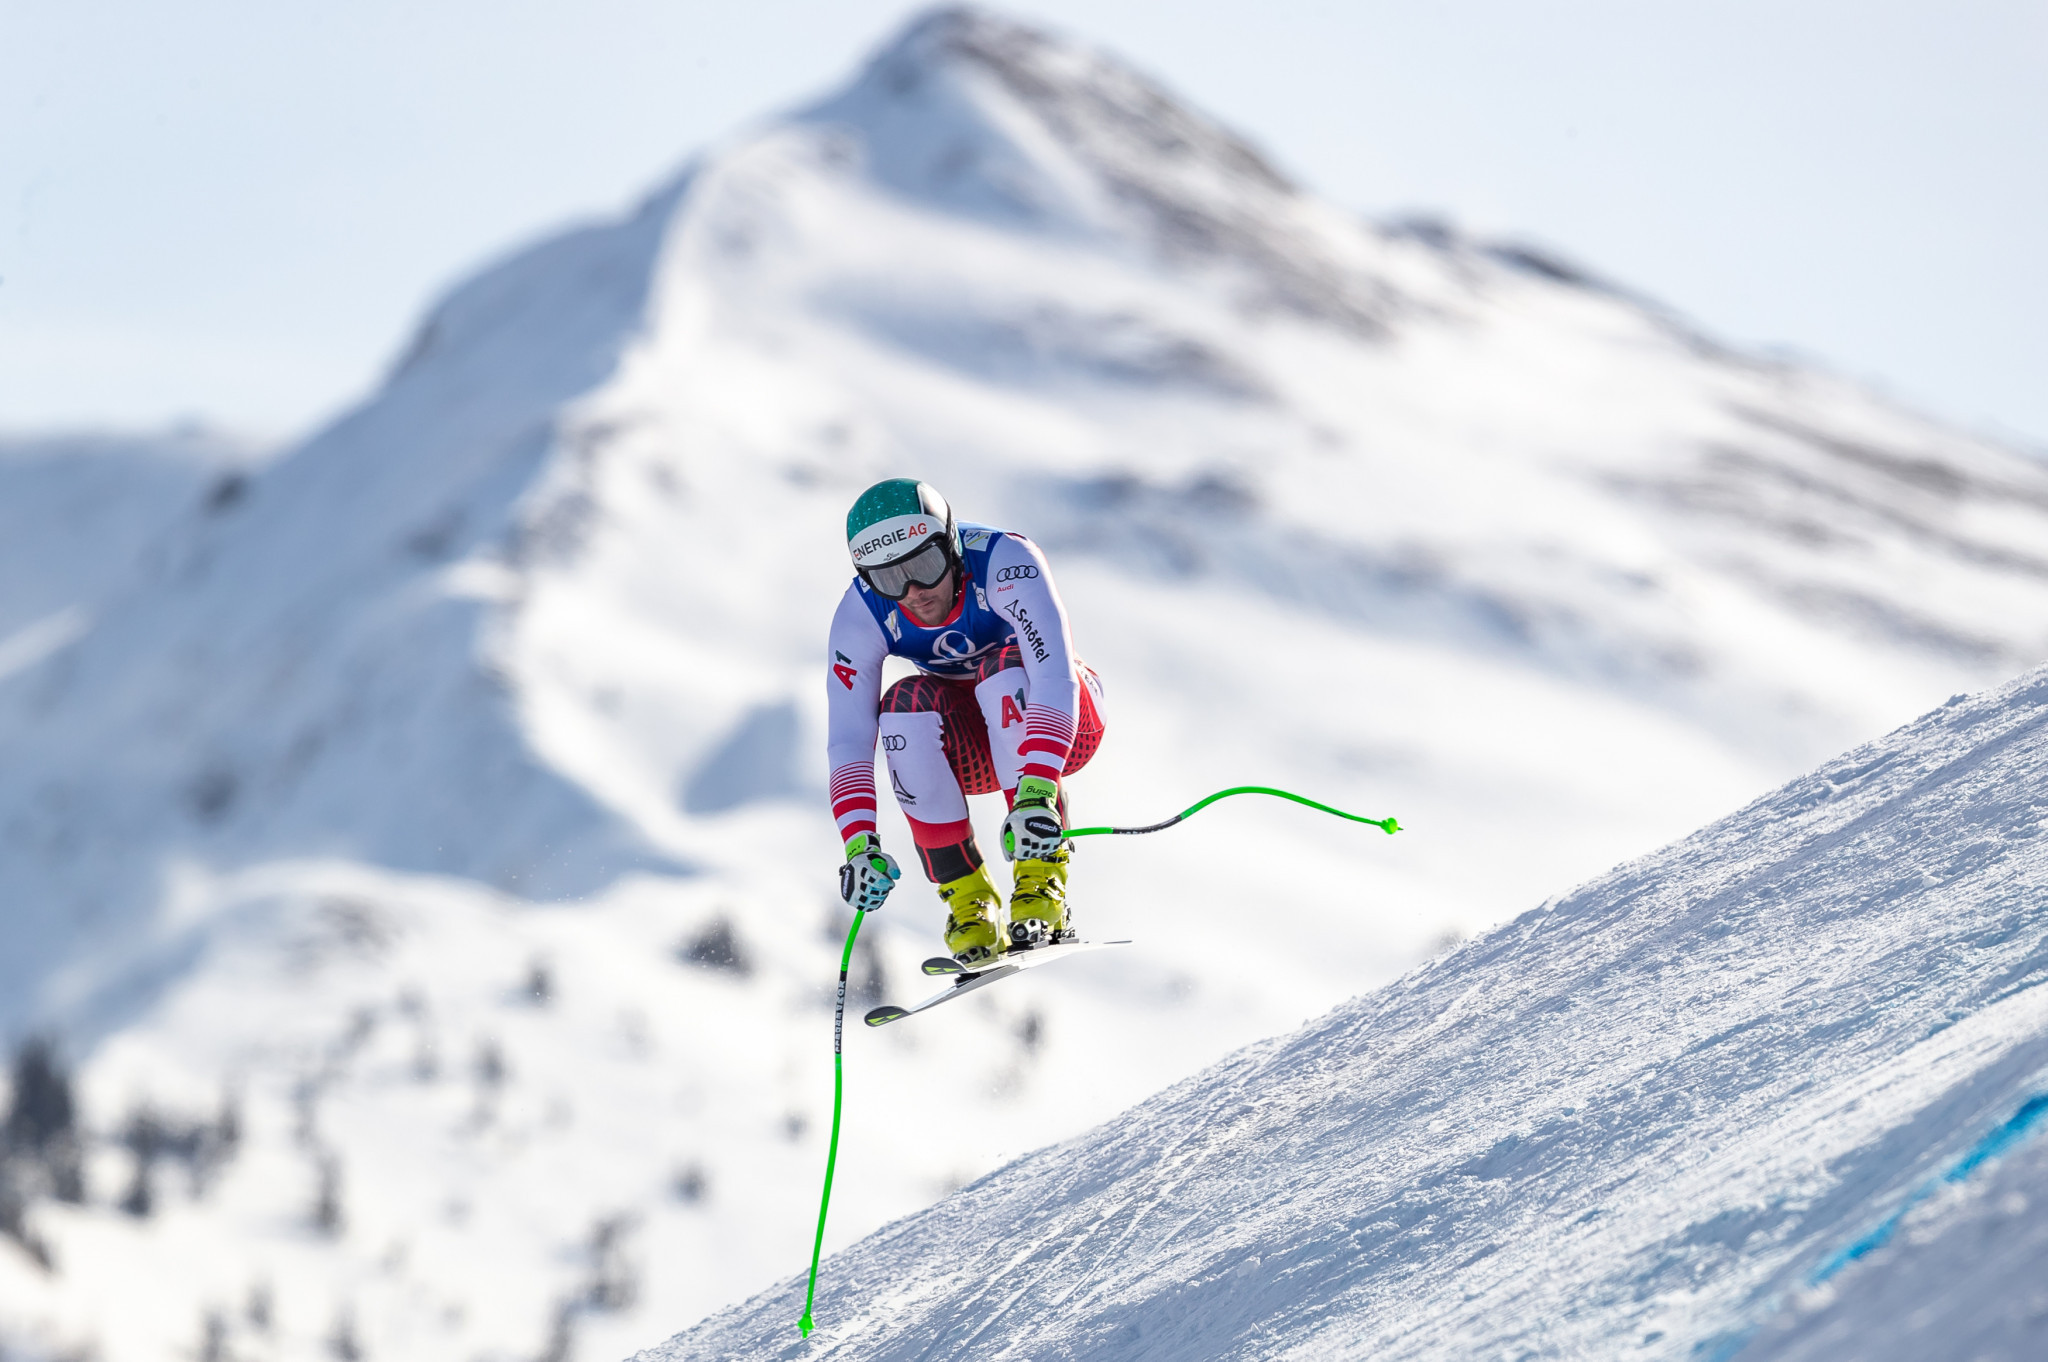 Vincent Kriechmayr, who leads the World Cup super-G standings and is the new world champion in the discipline, is set to race on home snow in Saalbach ©Getty Images